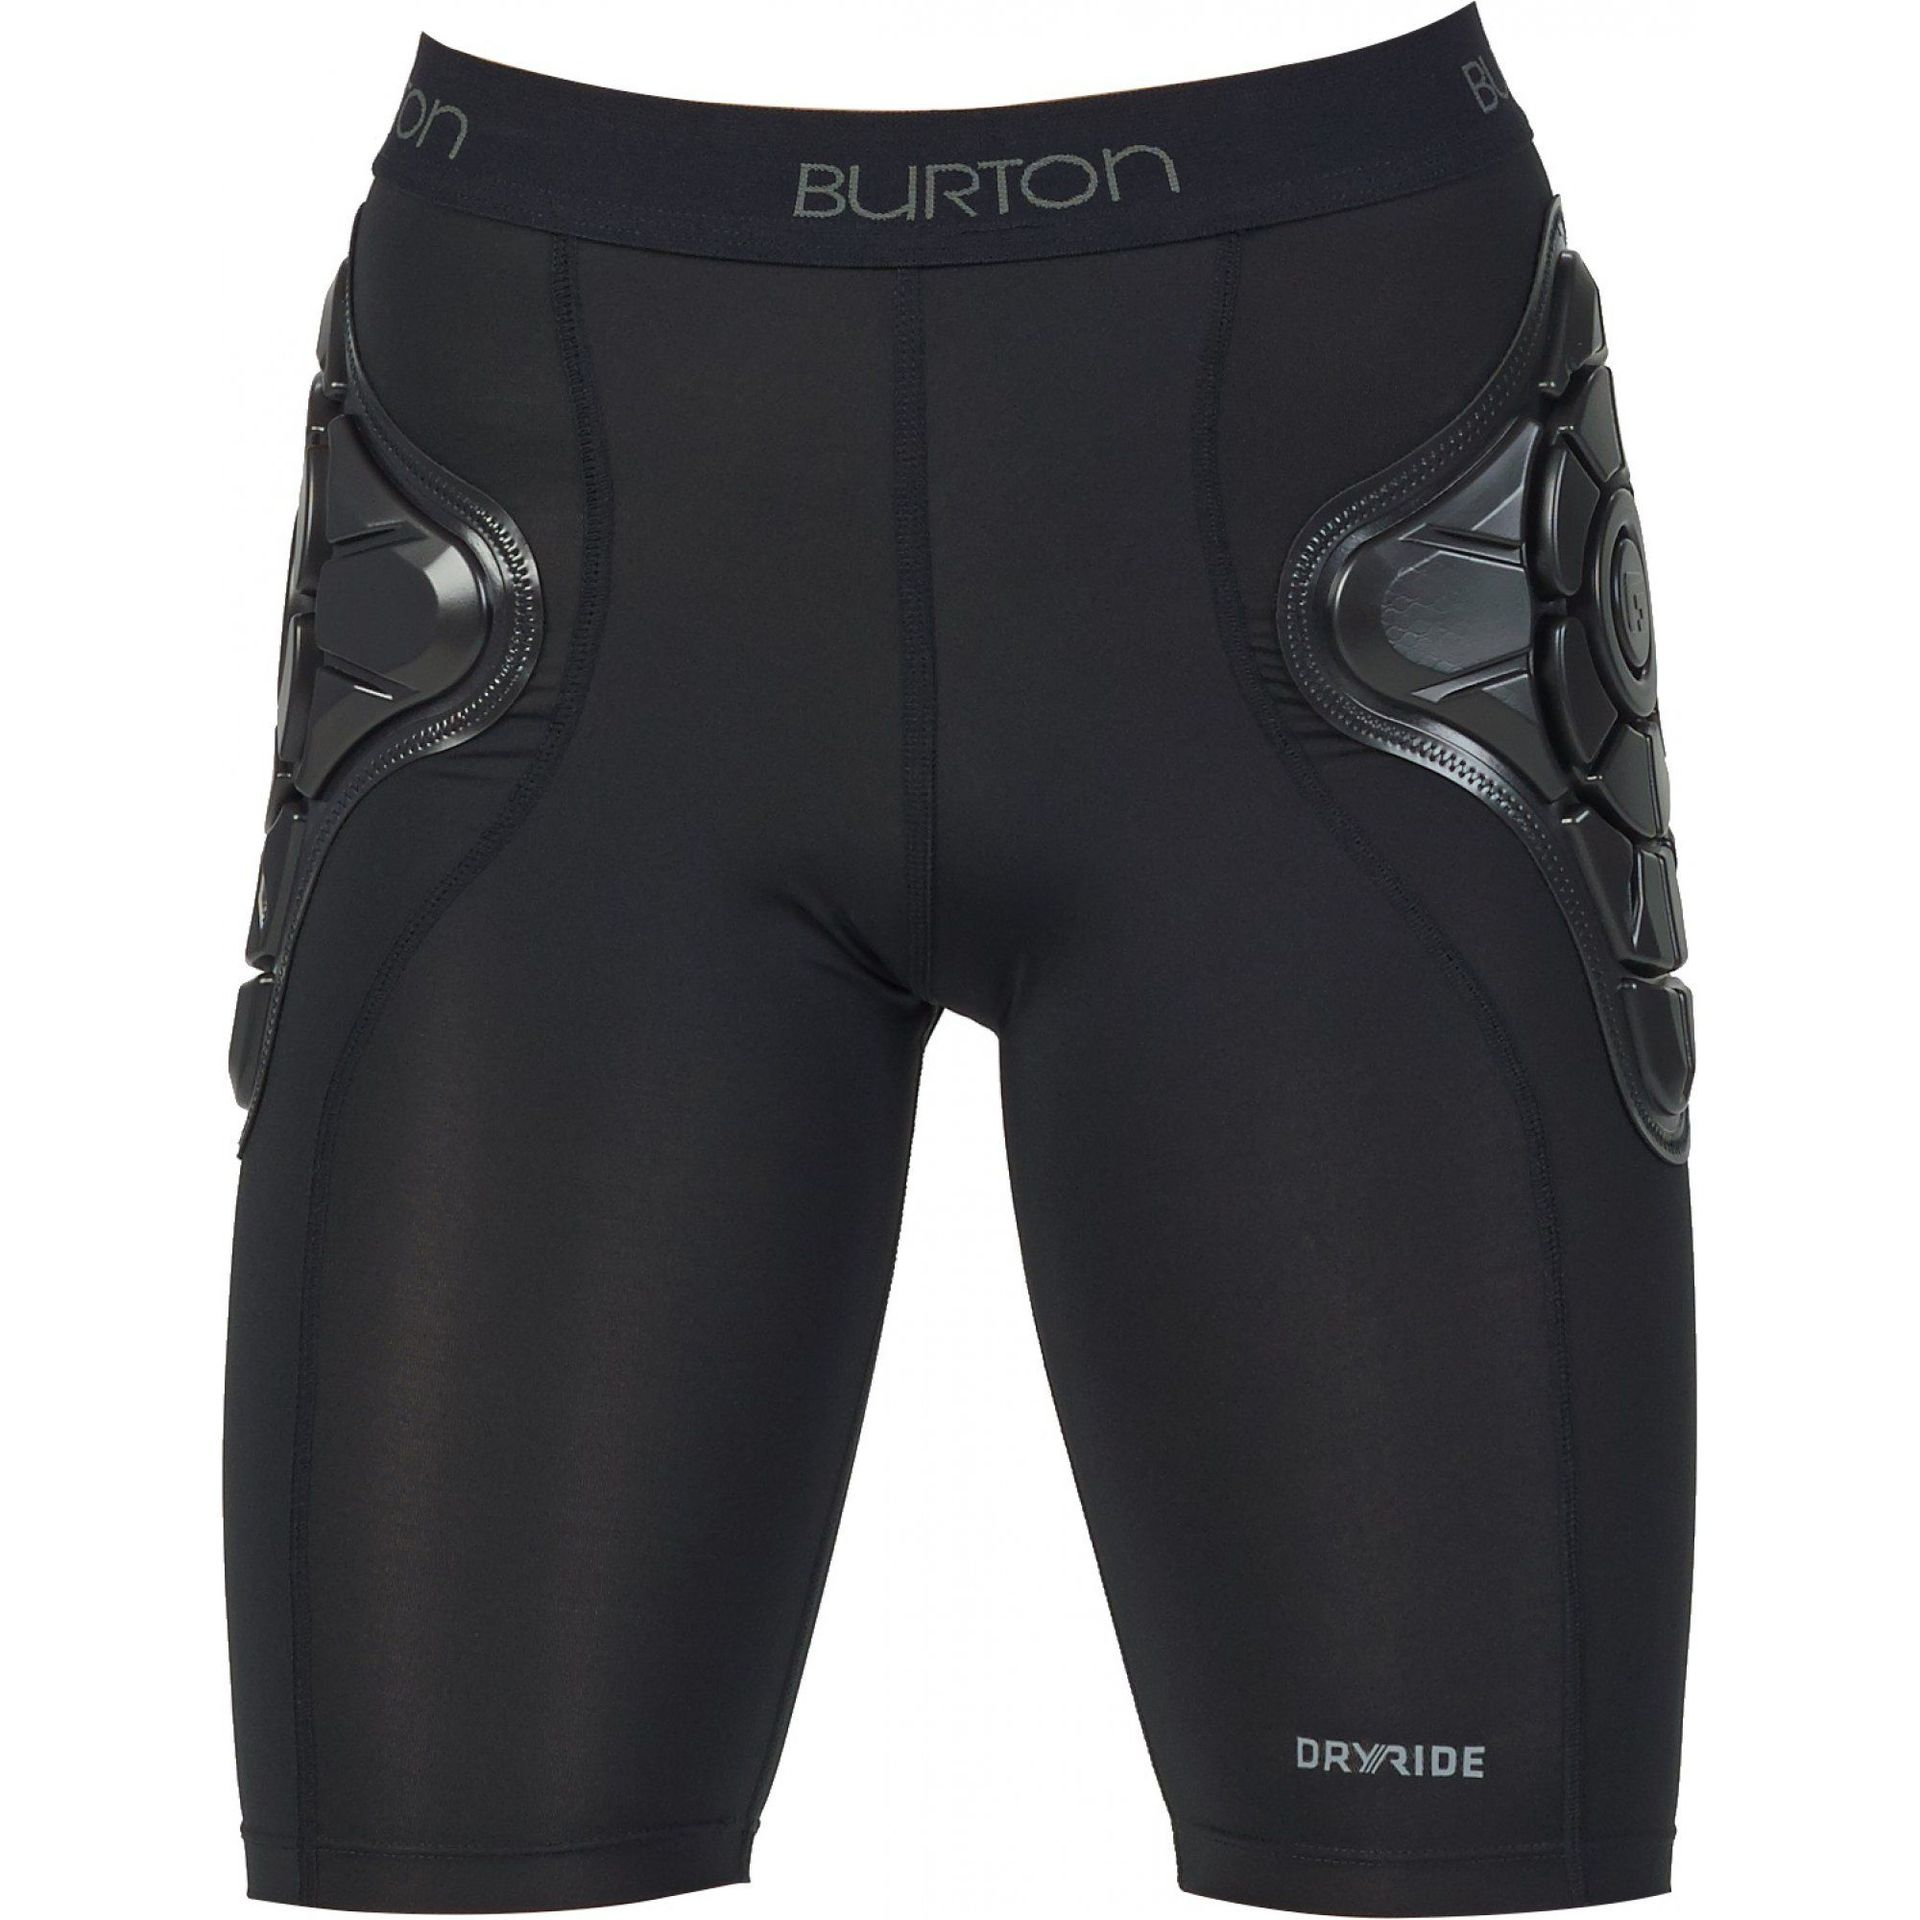 SPODENKI OCHRONNE BURTON WOMEN'S LUNA SHORT TRUE BLACK 151571-002 1